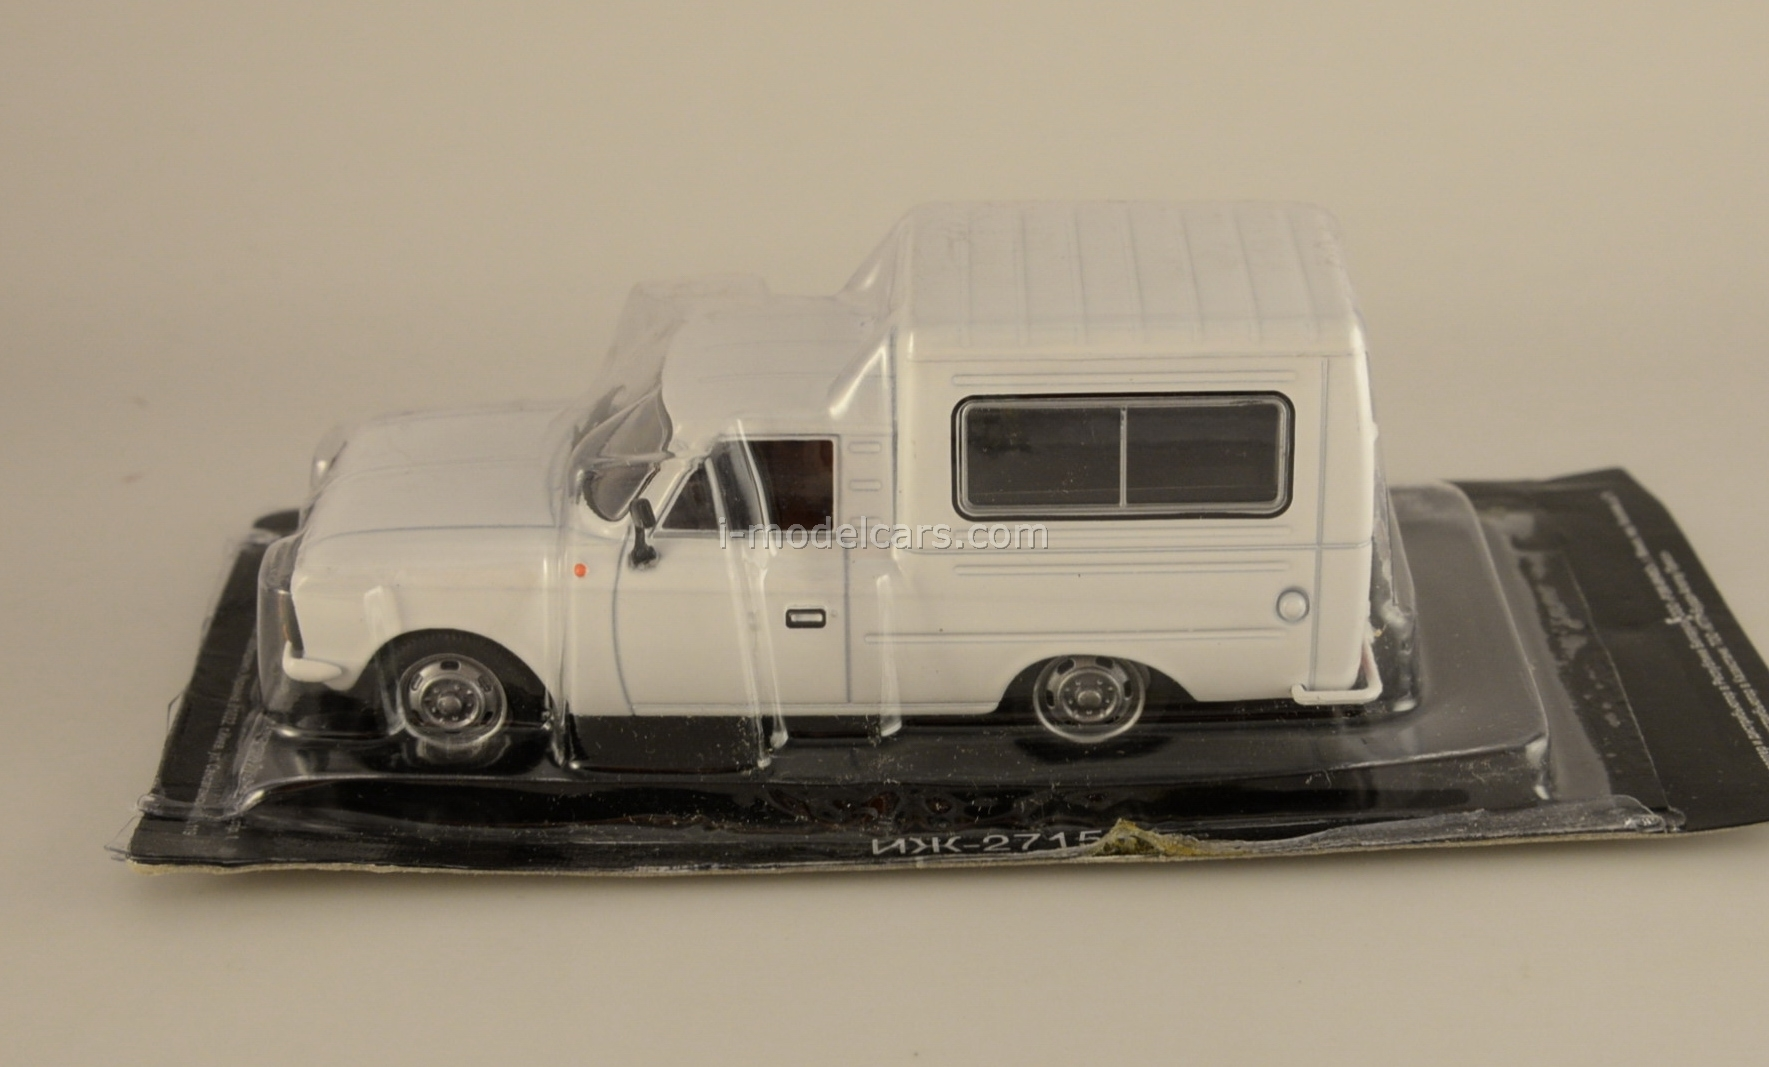 IZH-27156 white 1:43 DeAgostini Auto Legends USSR #76